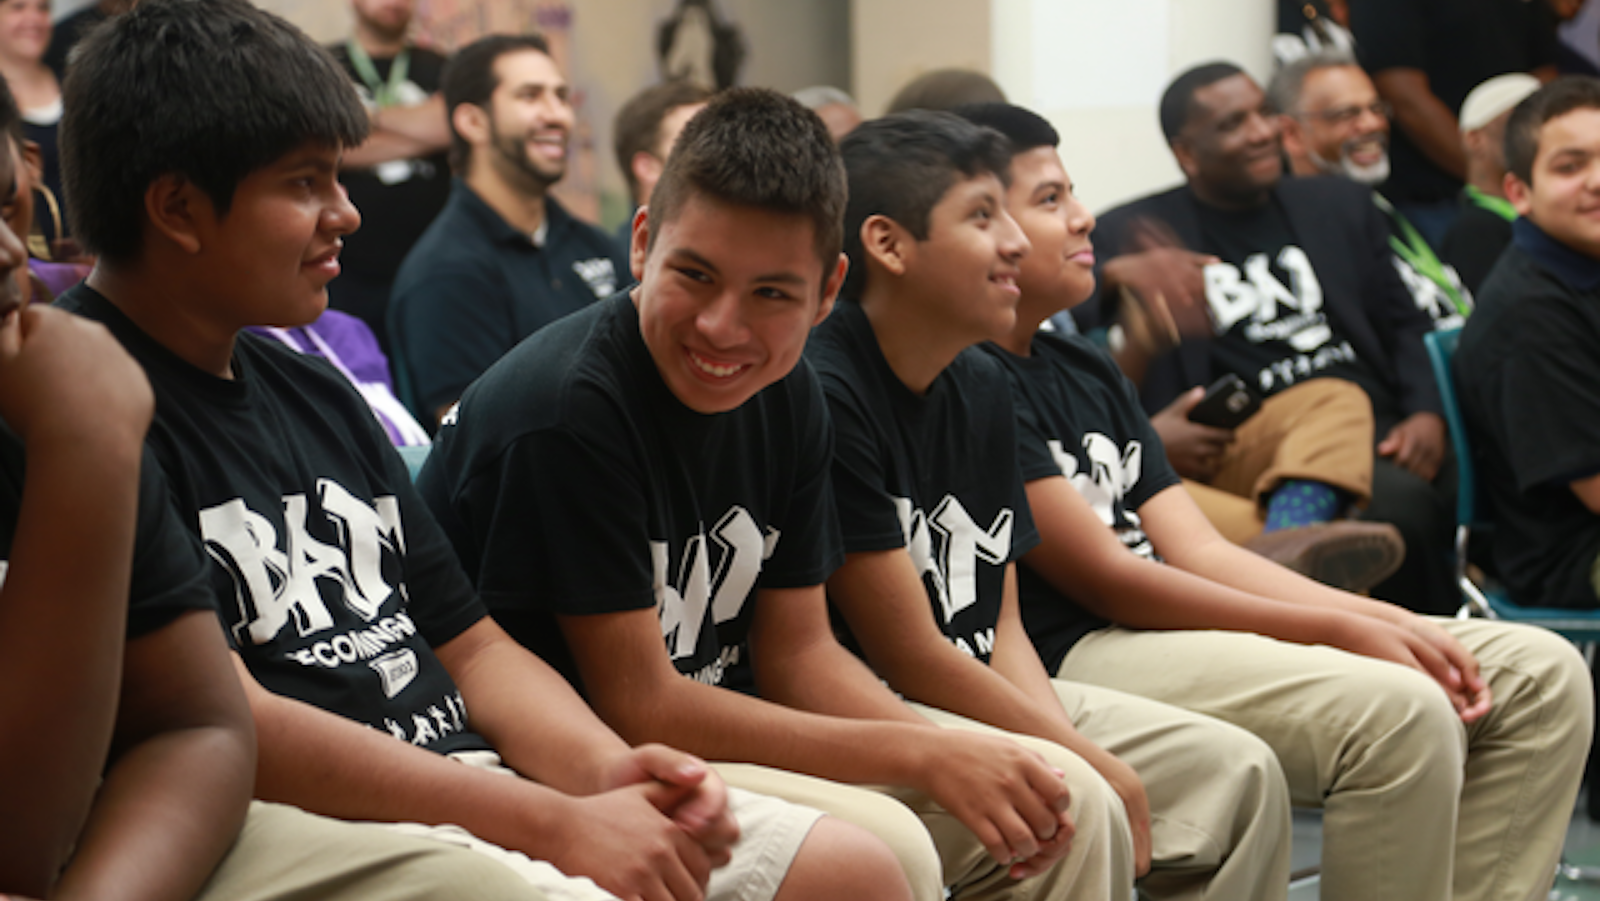 Chicago teens participating in a Becoming a Man workshop